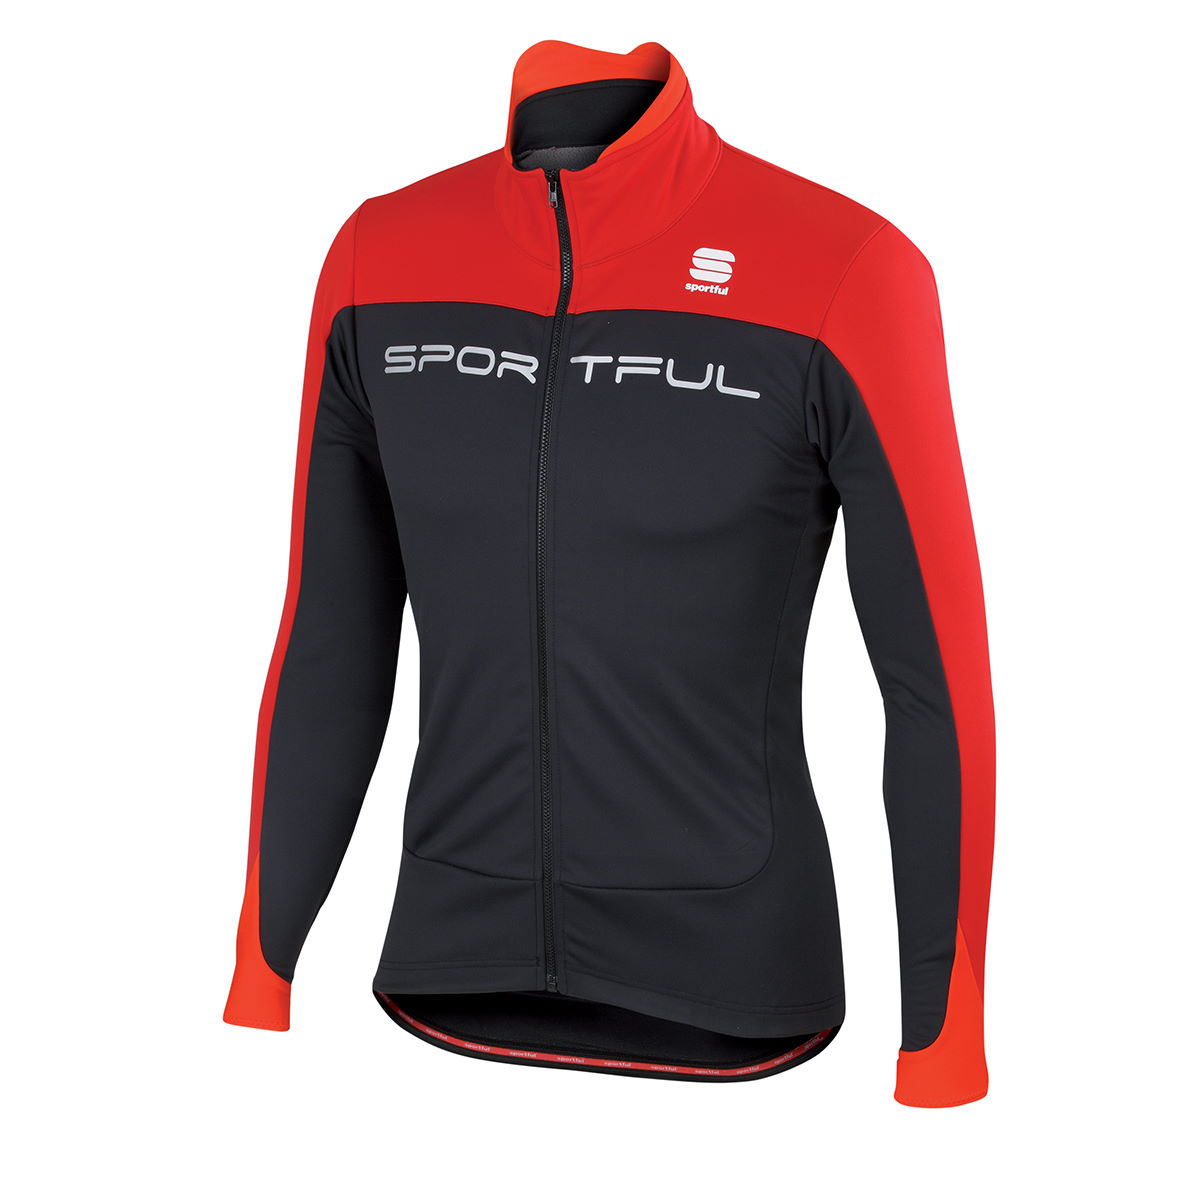 Veste Sportful Flash Softshell - S Noir/Rouge Coupe-vents vélo